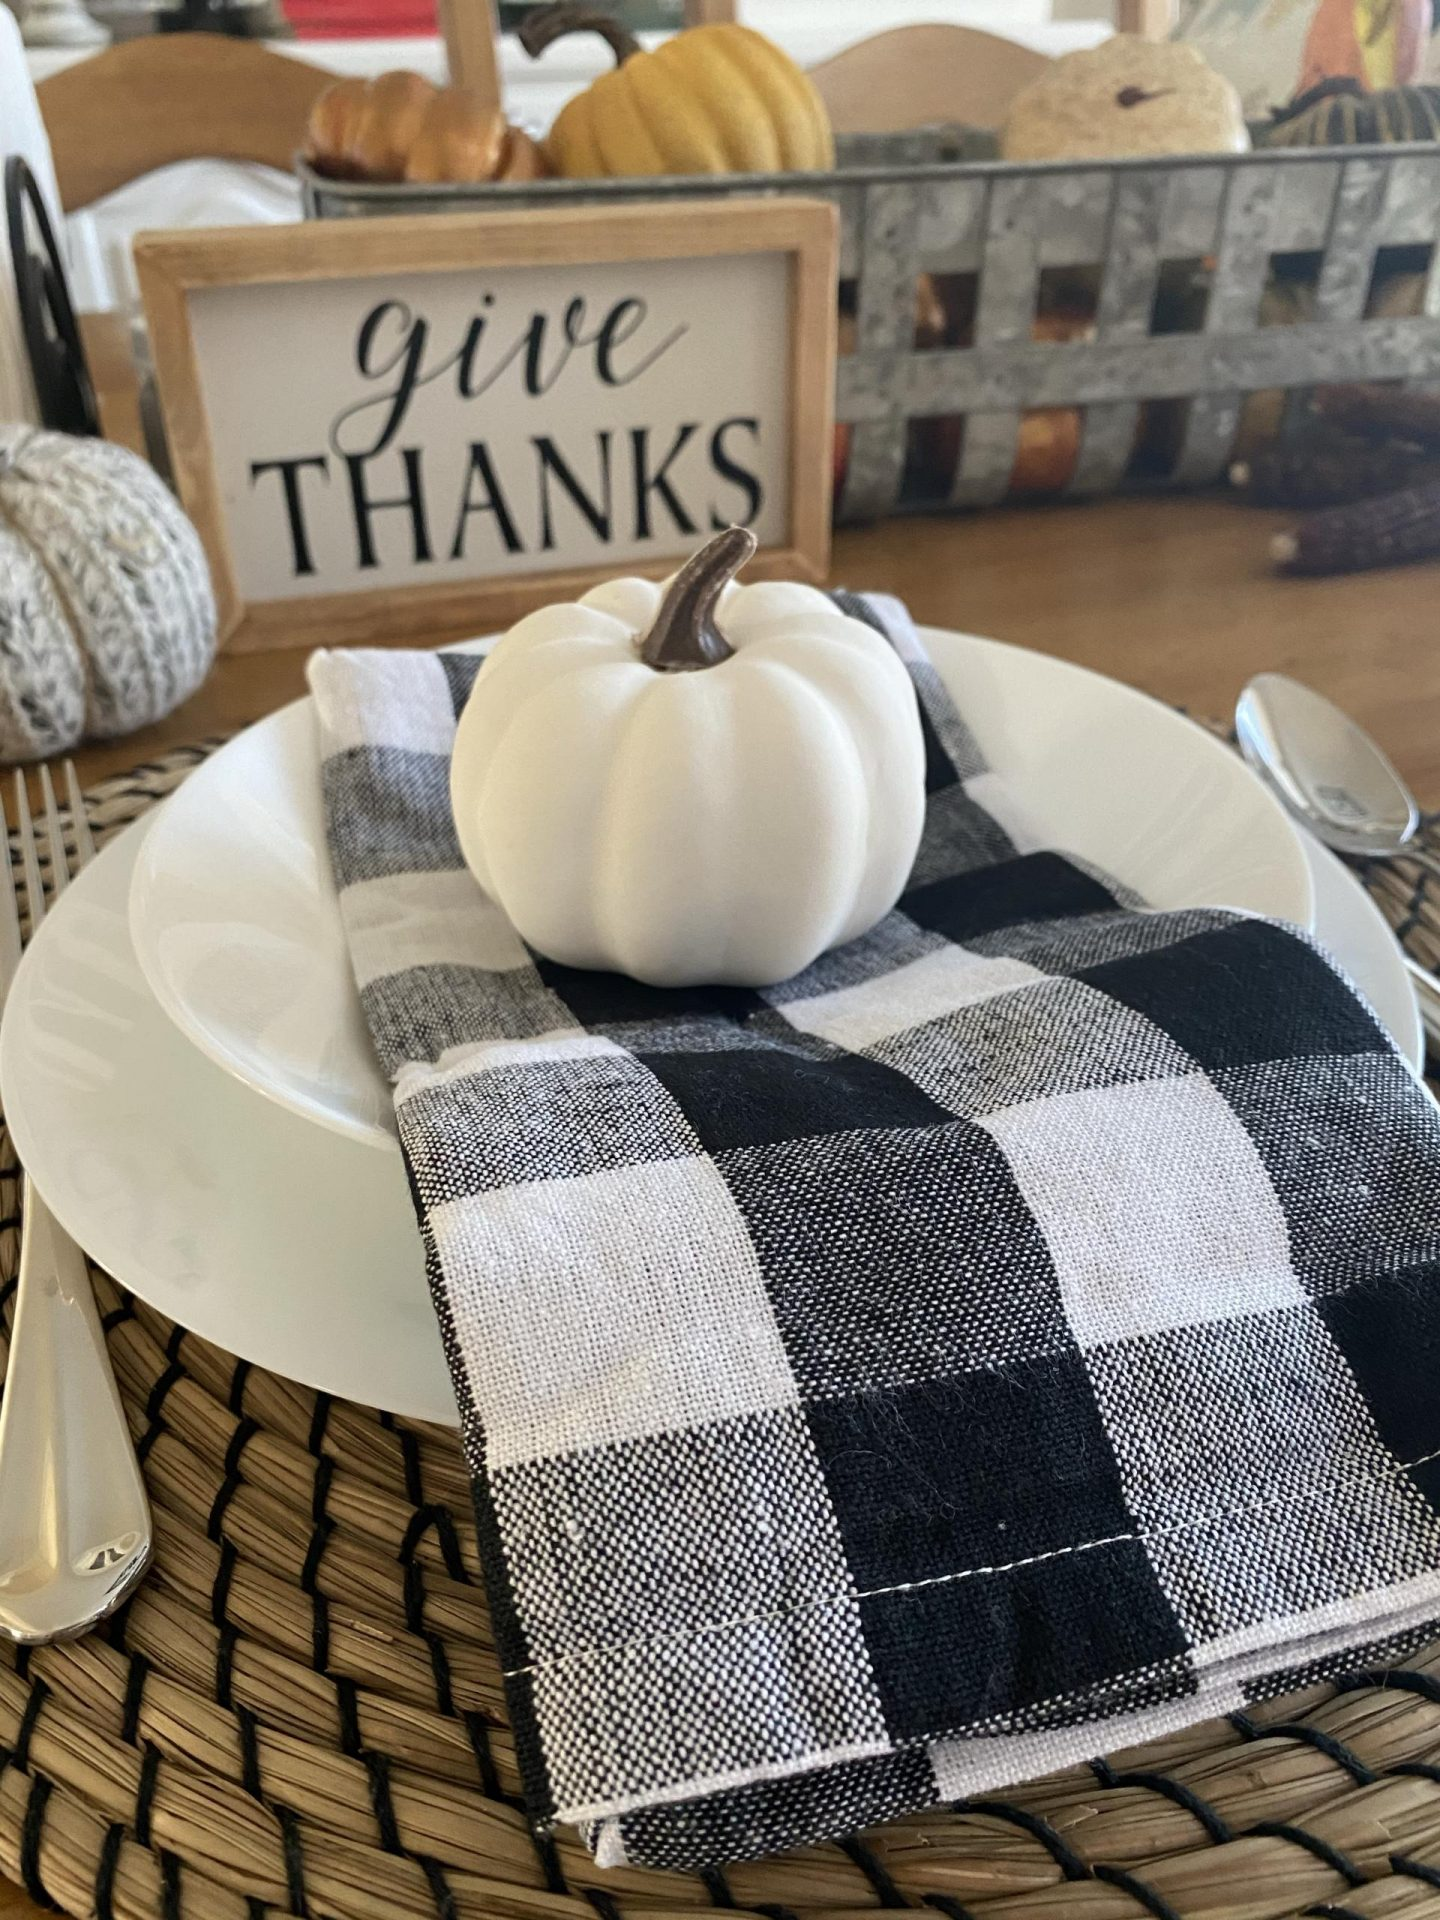 NC blogger Rebecca Lately shares her place settings for Thanksgiving with a simply black and white color scheme. Check it out!